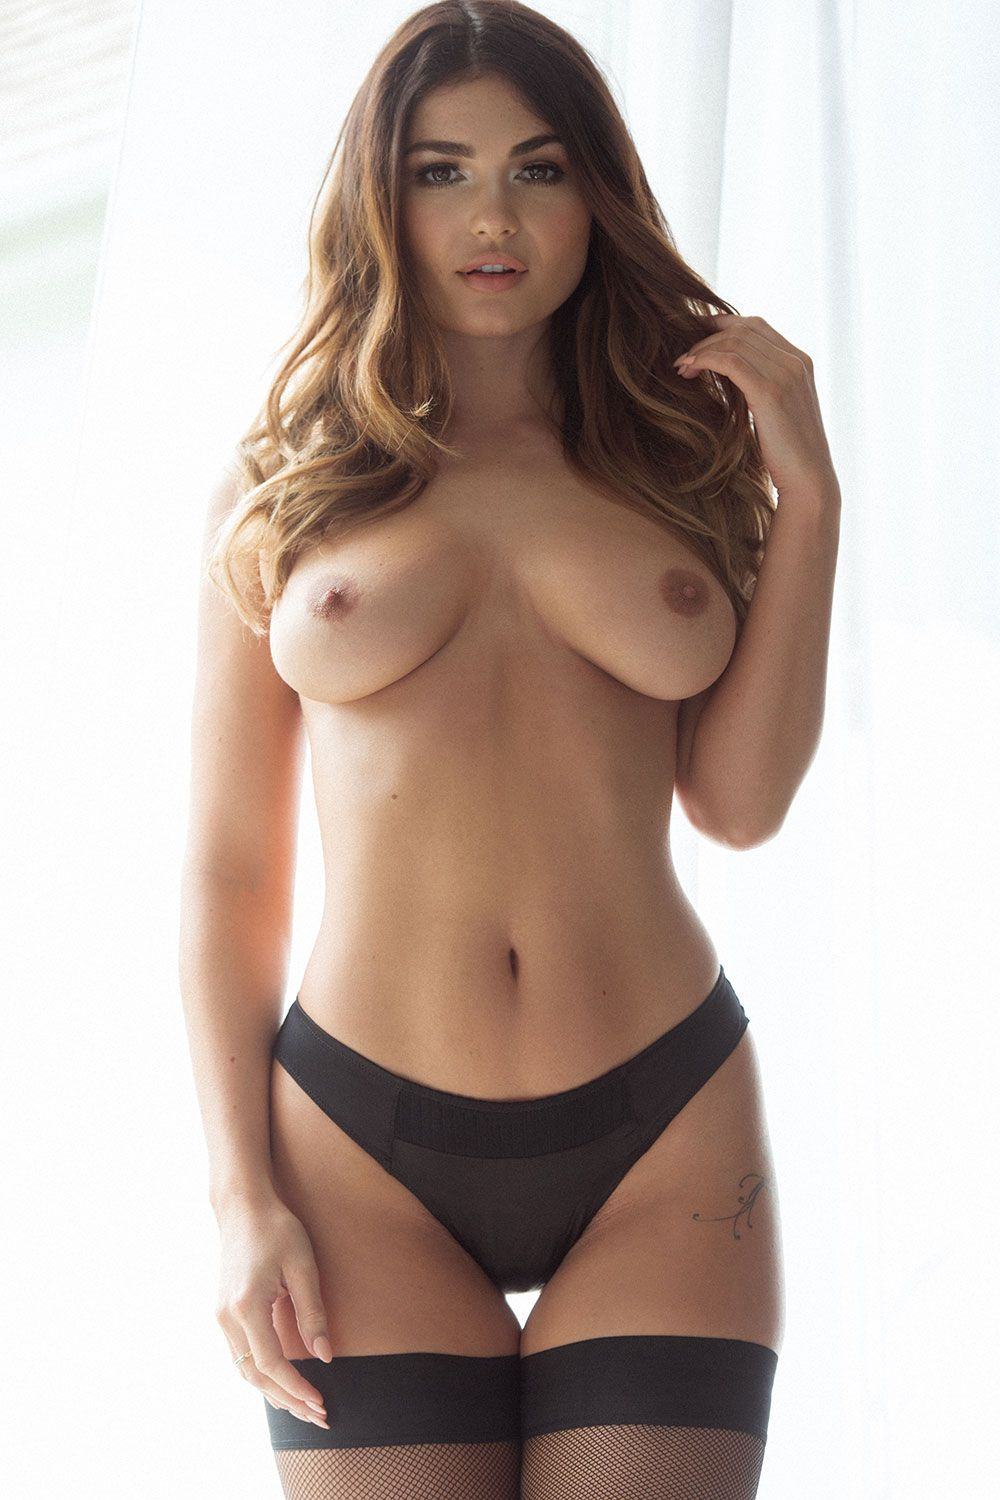 India-Reynolds-Sexy-Topless-Pics-2